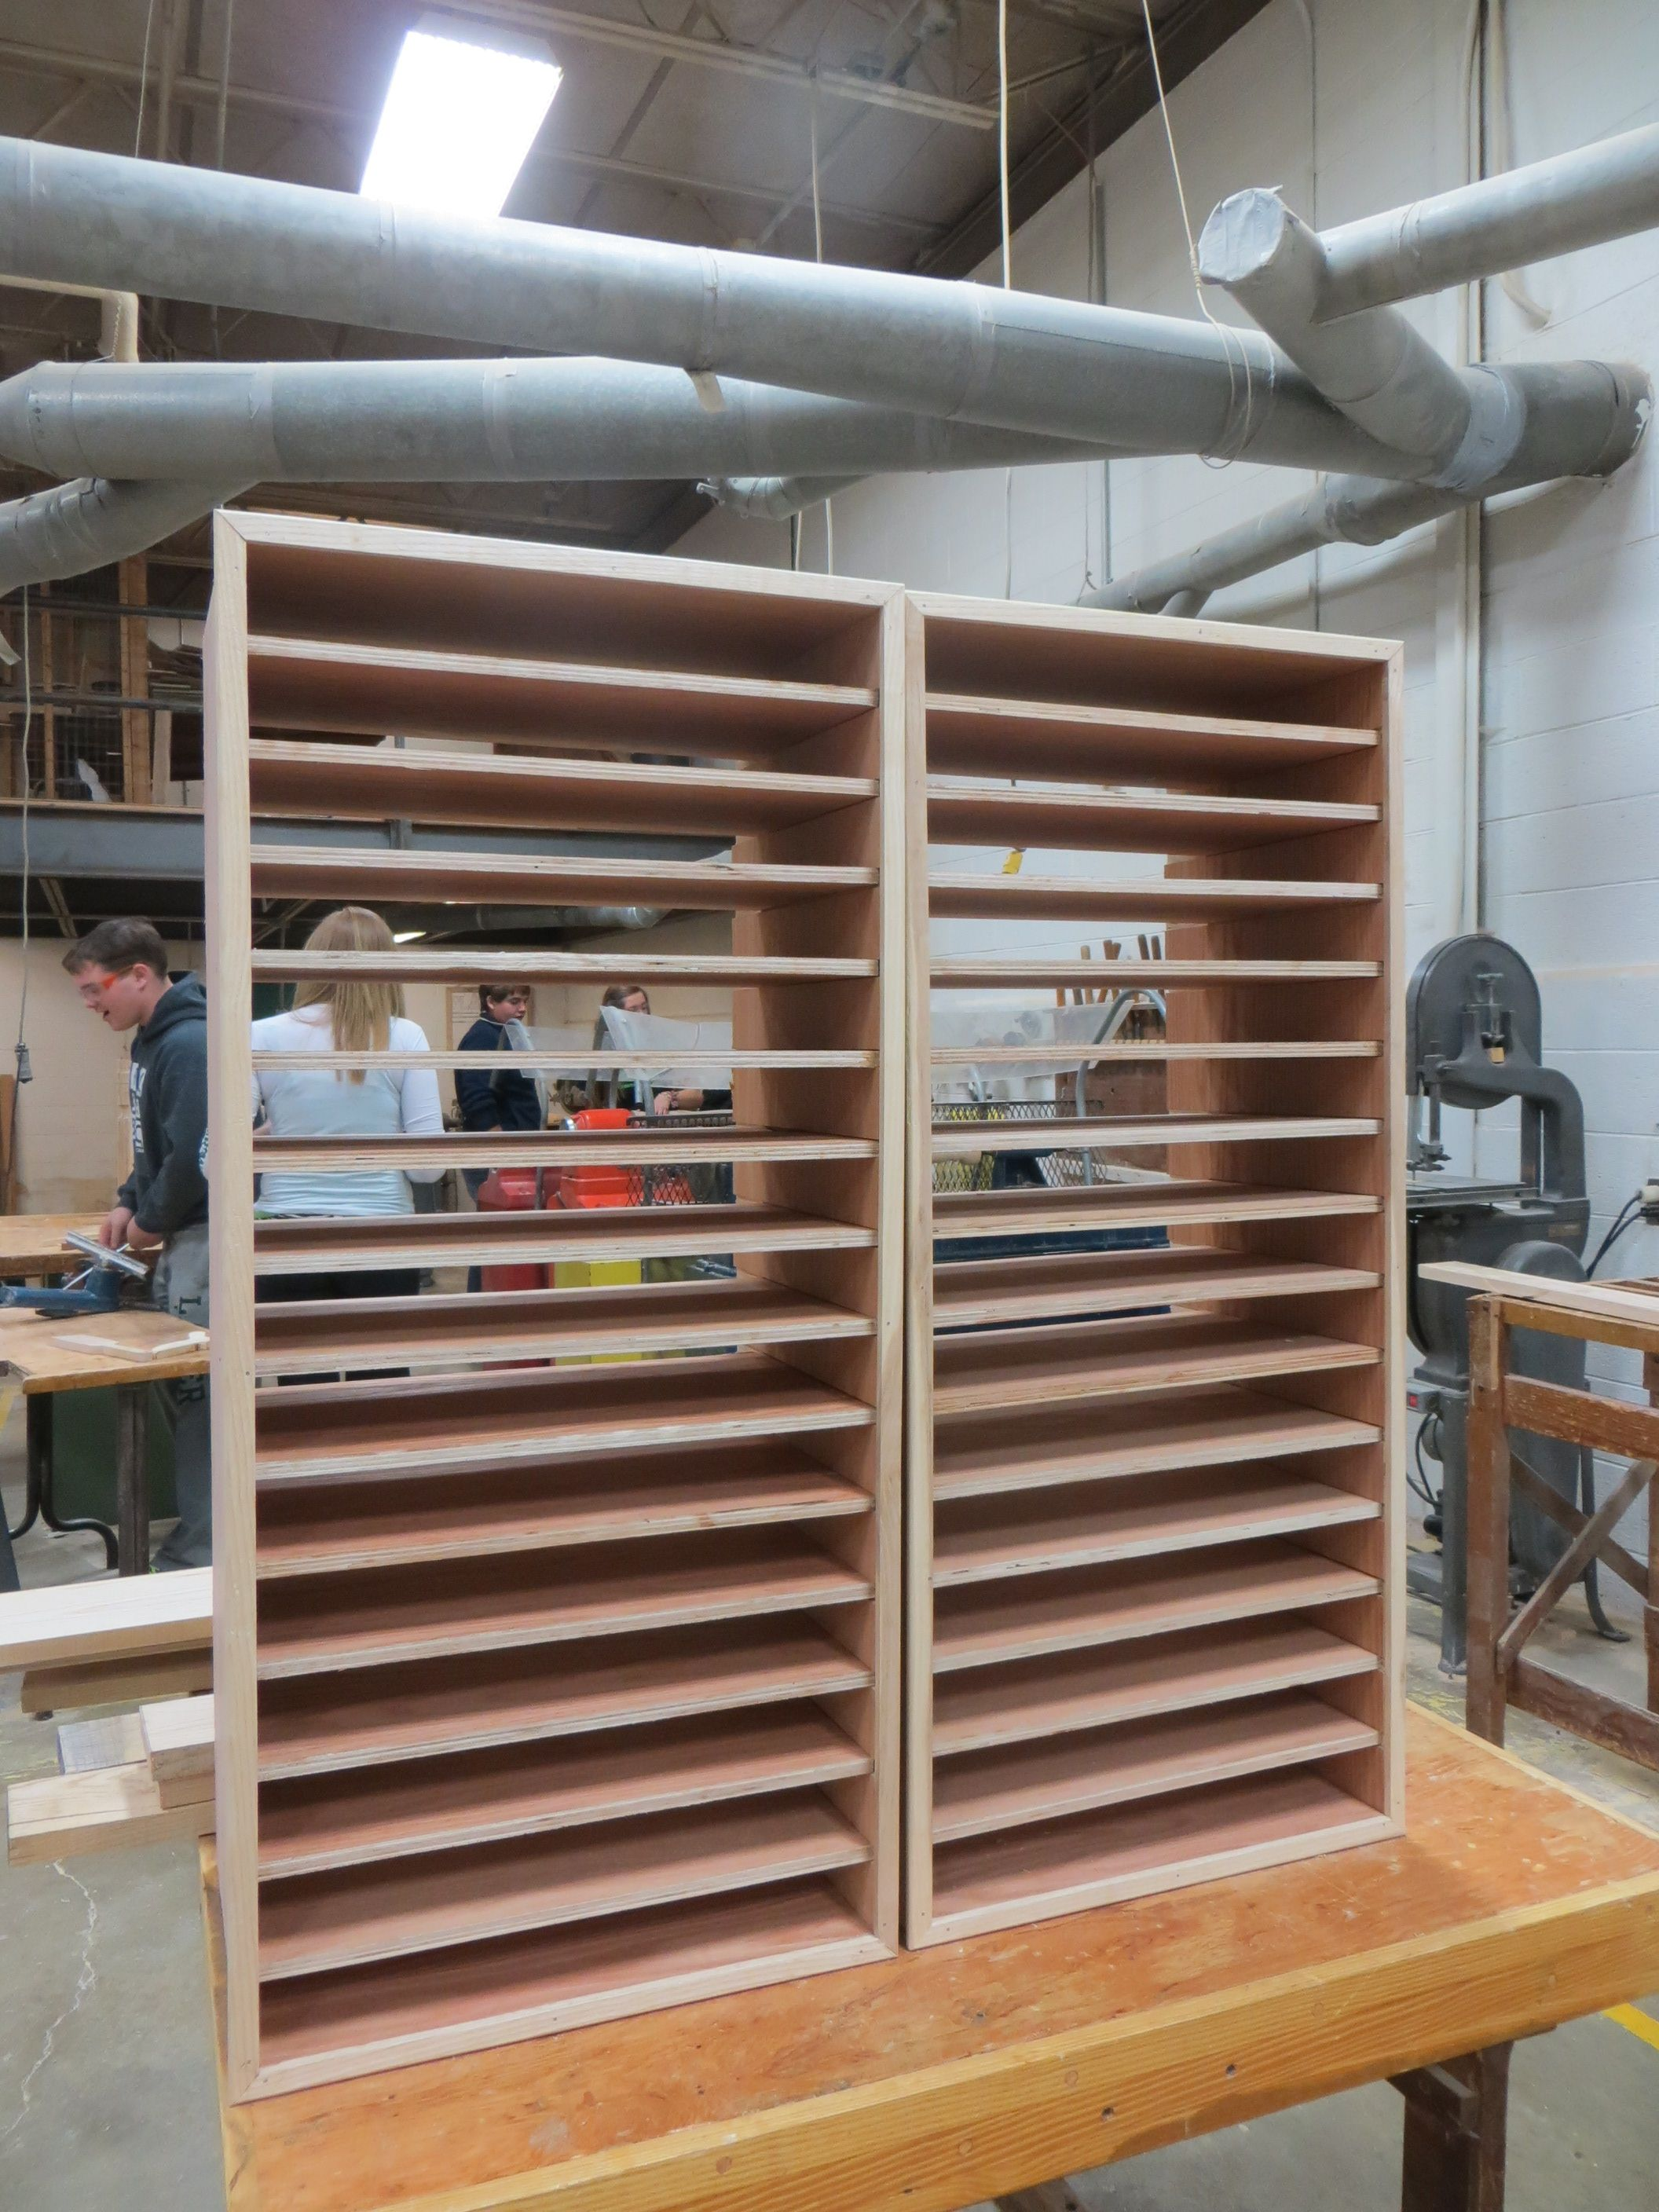 High school students are creating these storage